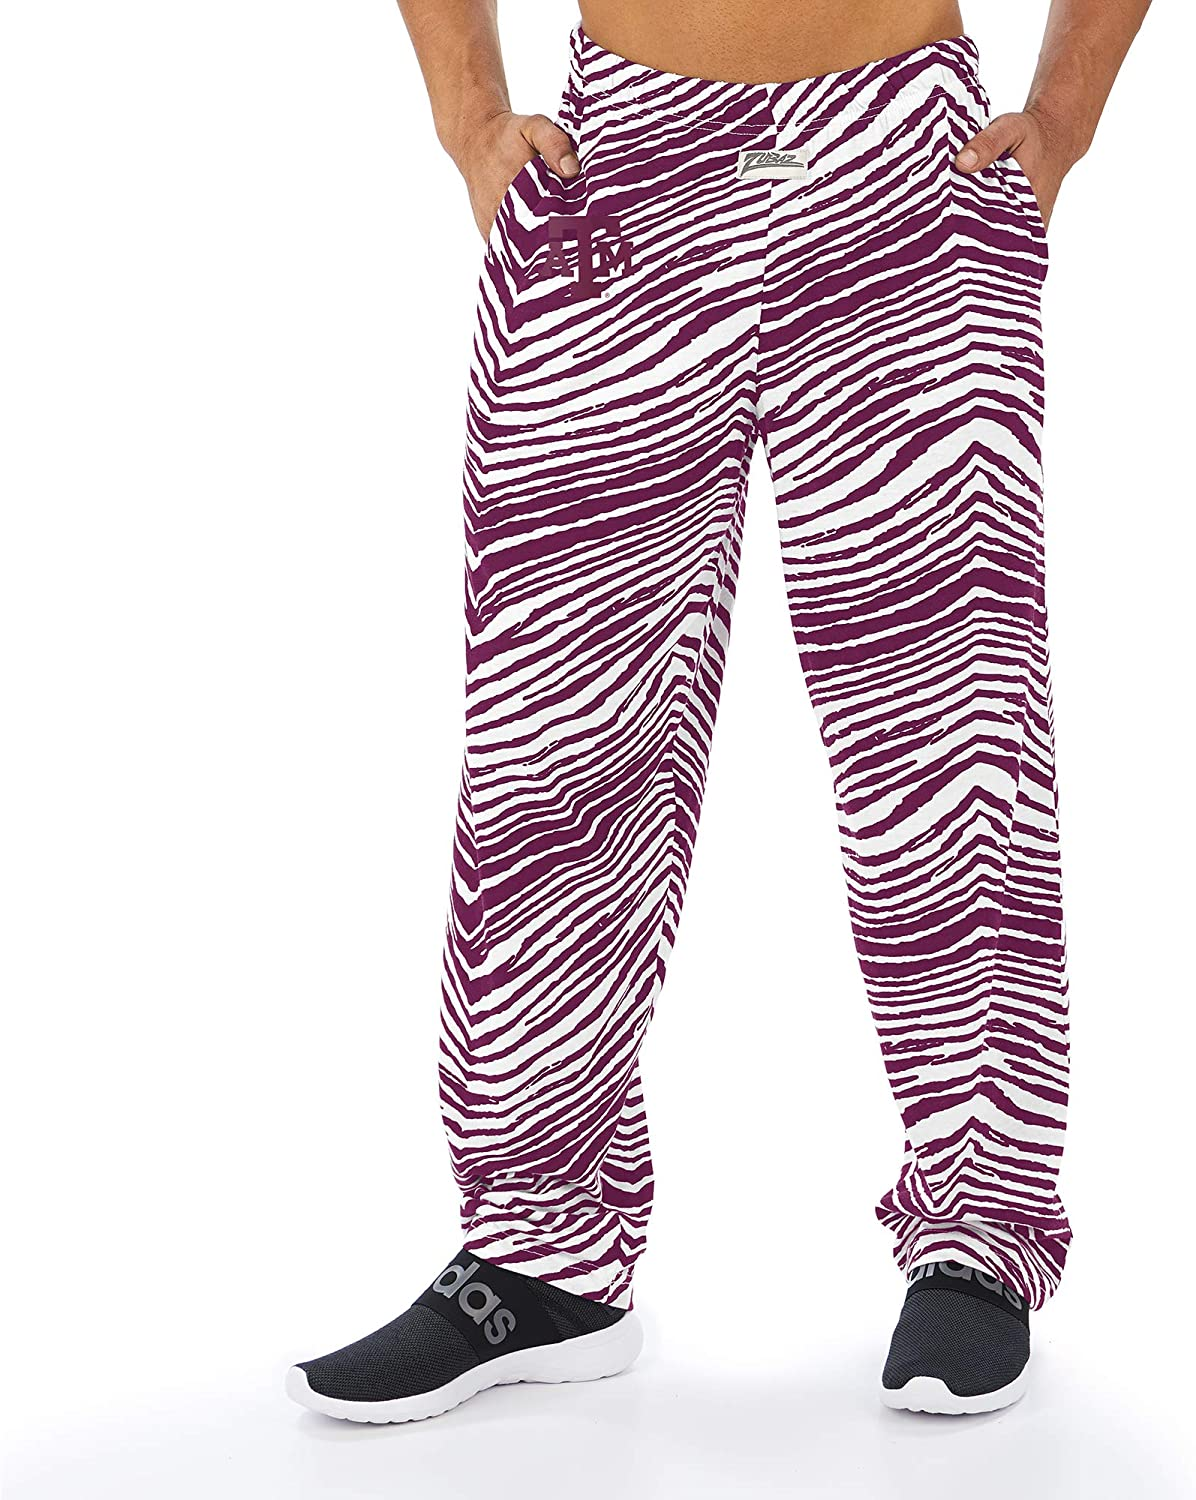 Multi Color Zubaz Officially Licensed NCAA Mens Zebra Pants Sizes Small to XX-Large